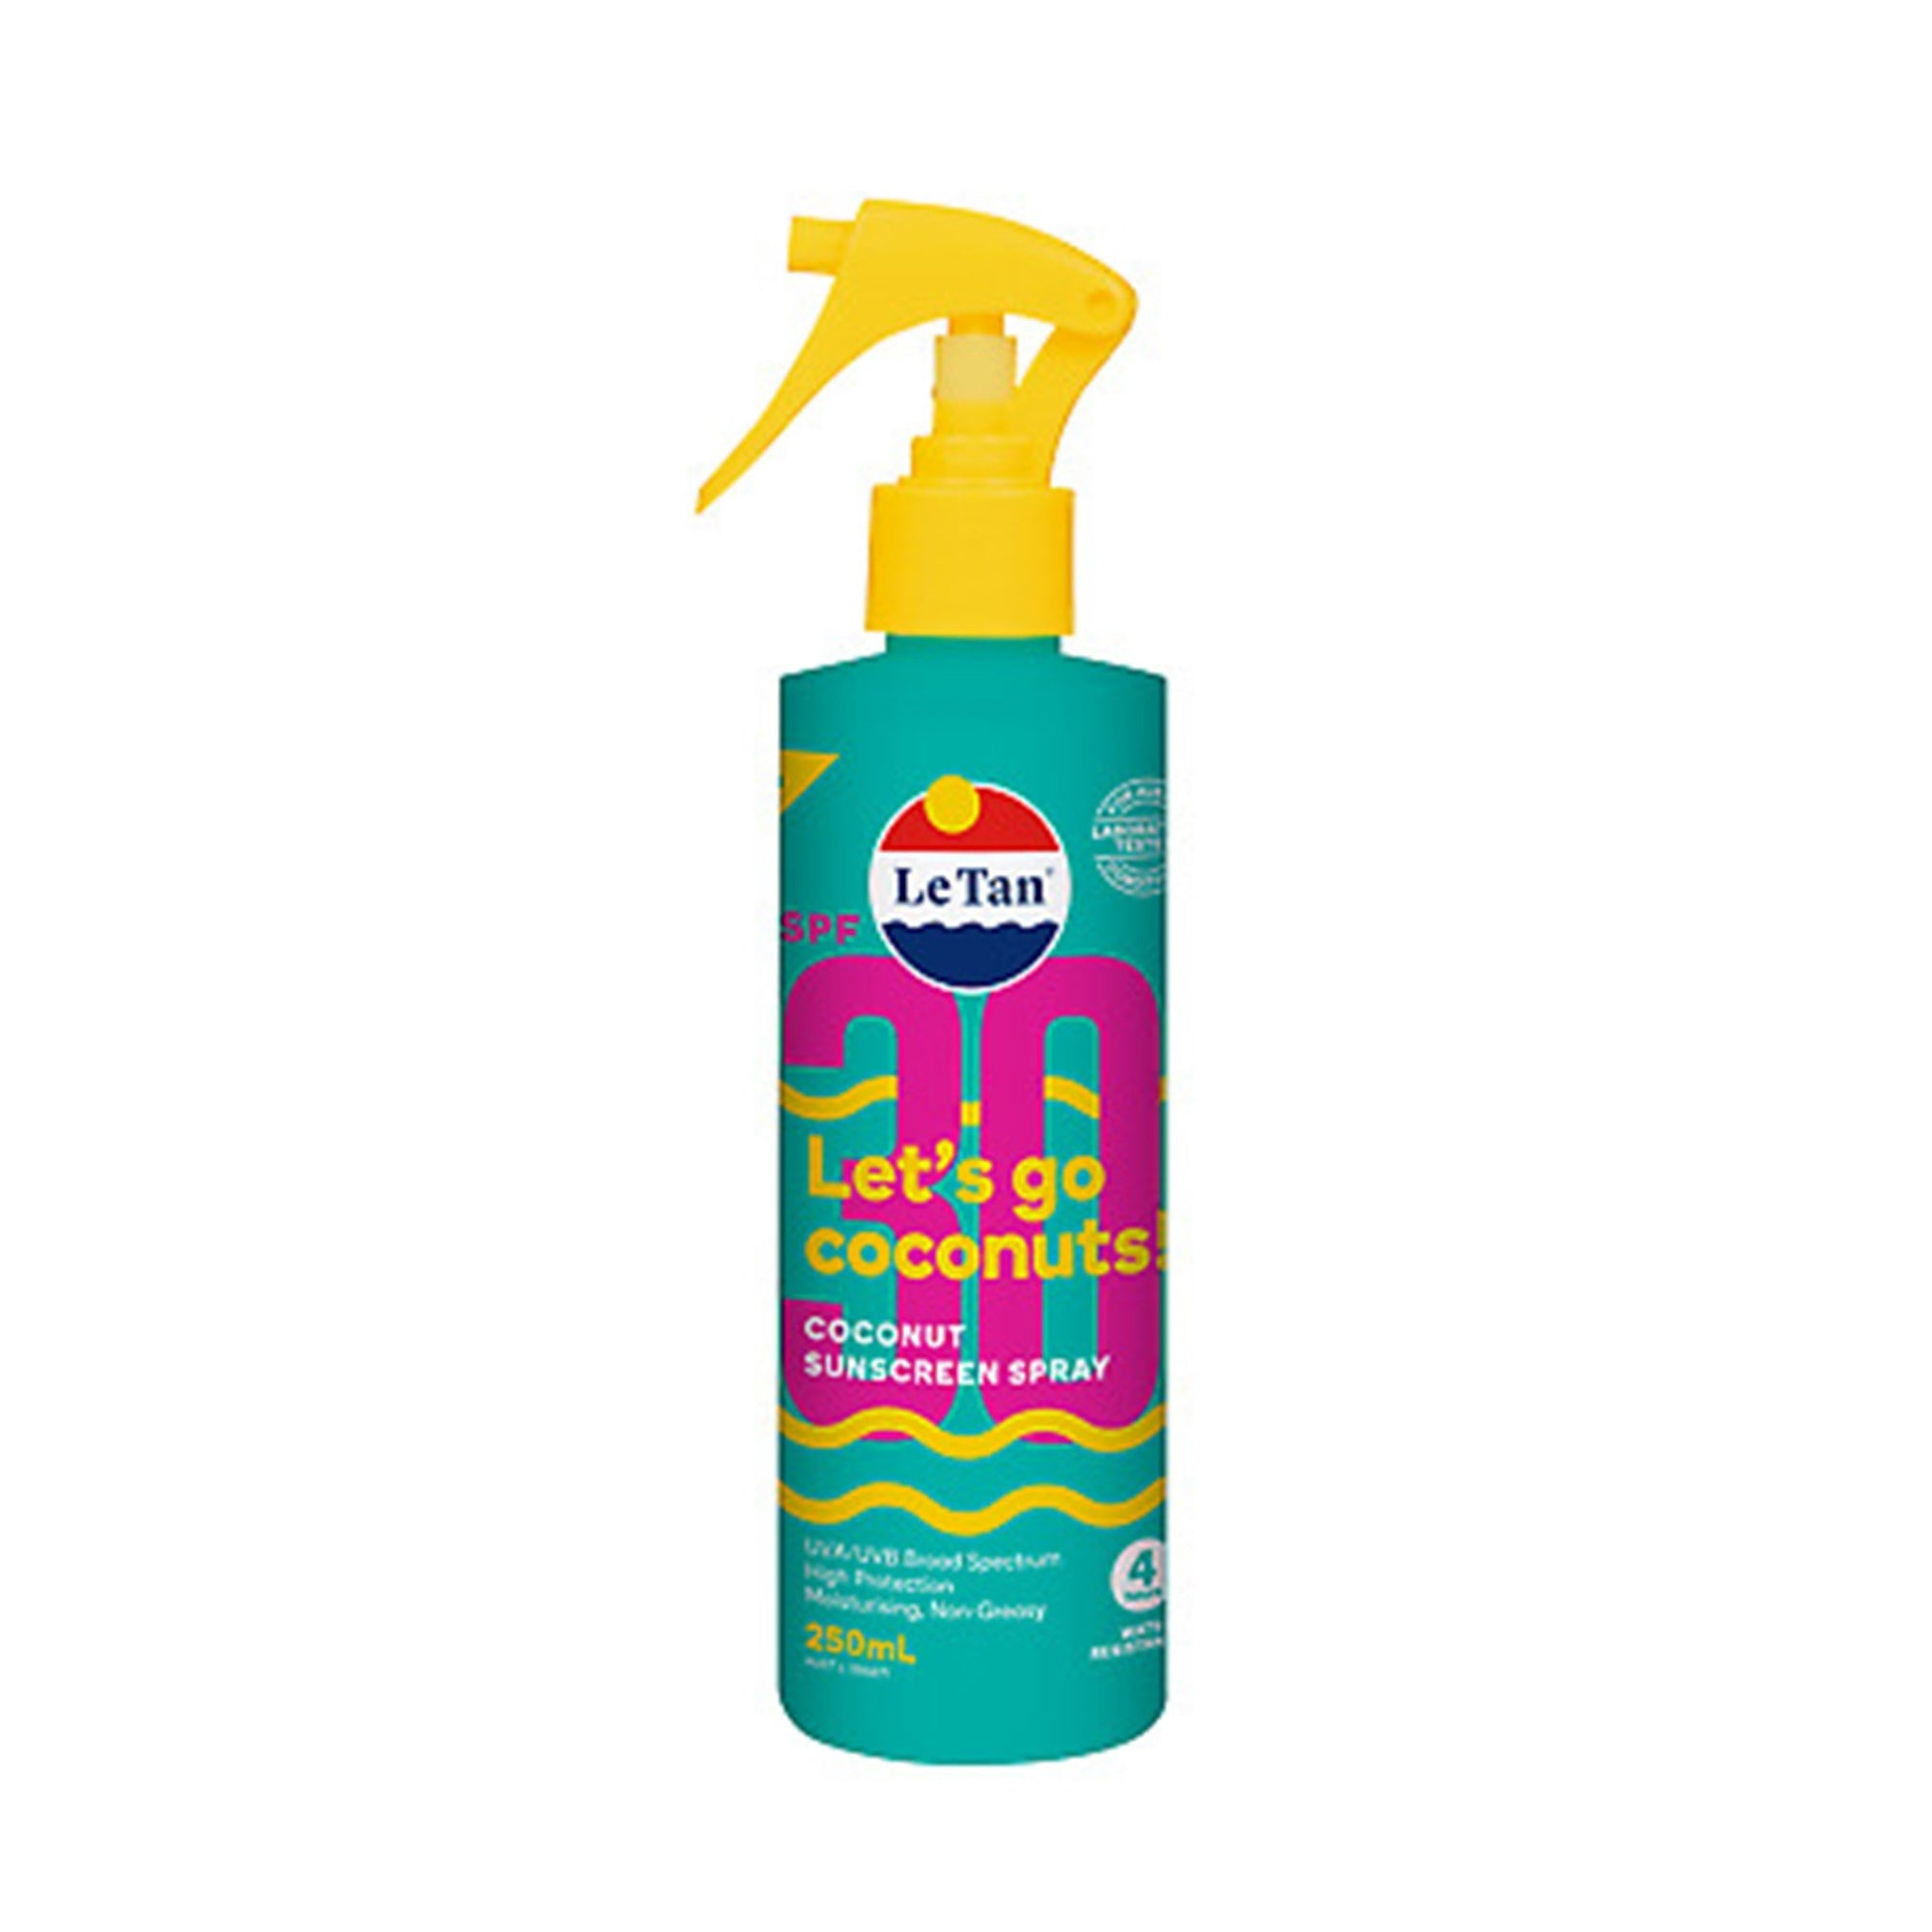 Le Tan Sunscreen Lets Go Coco 250ml